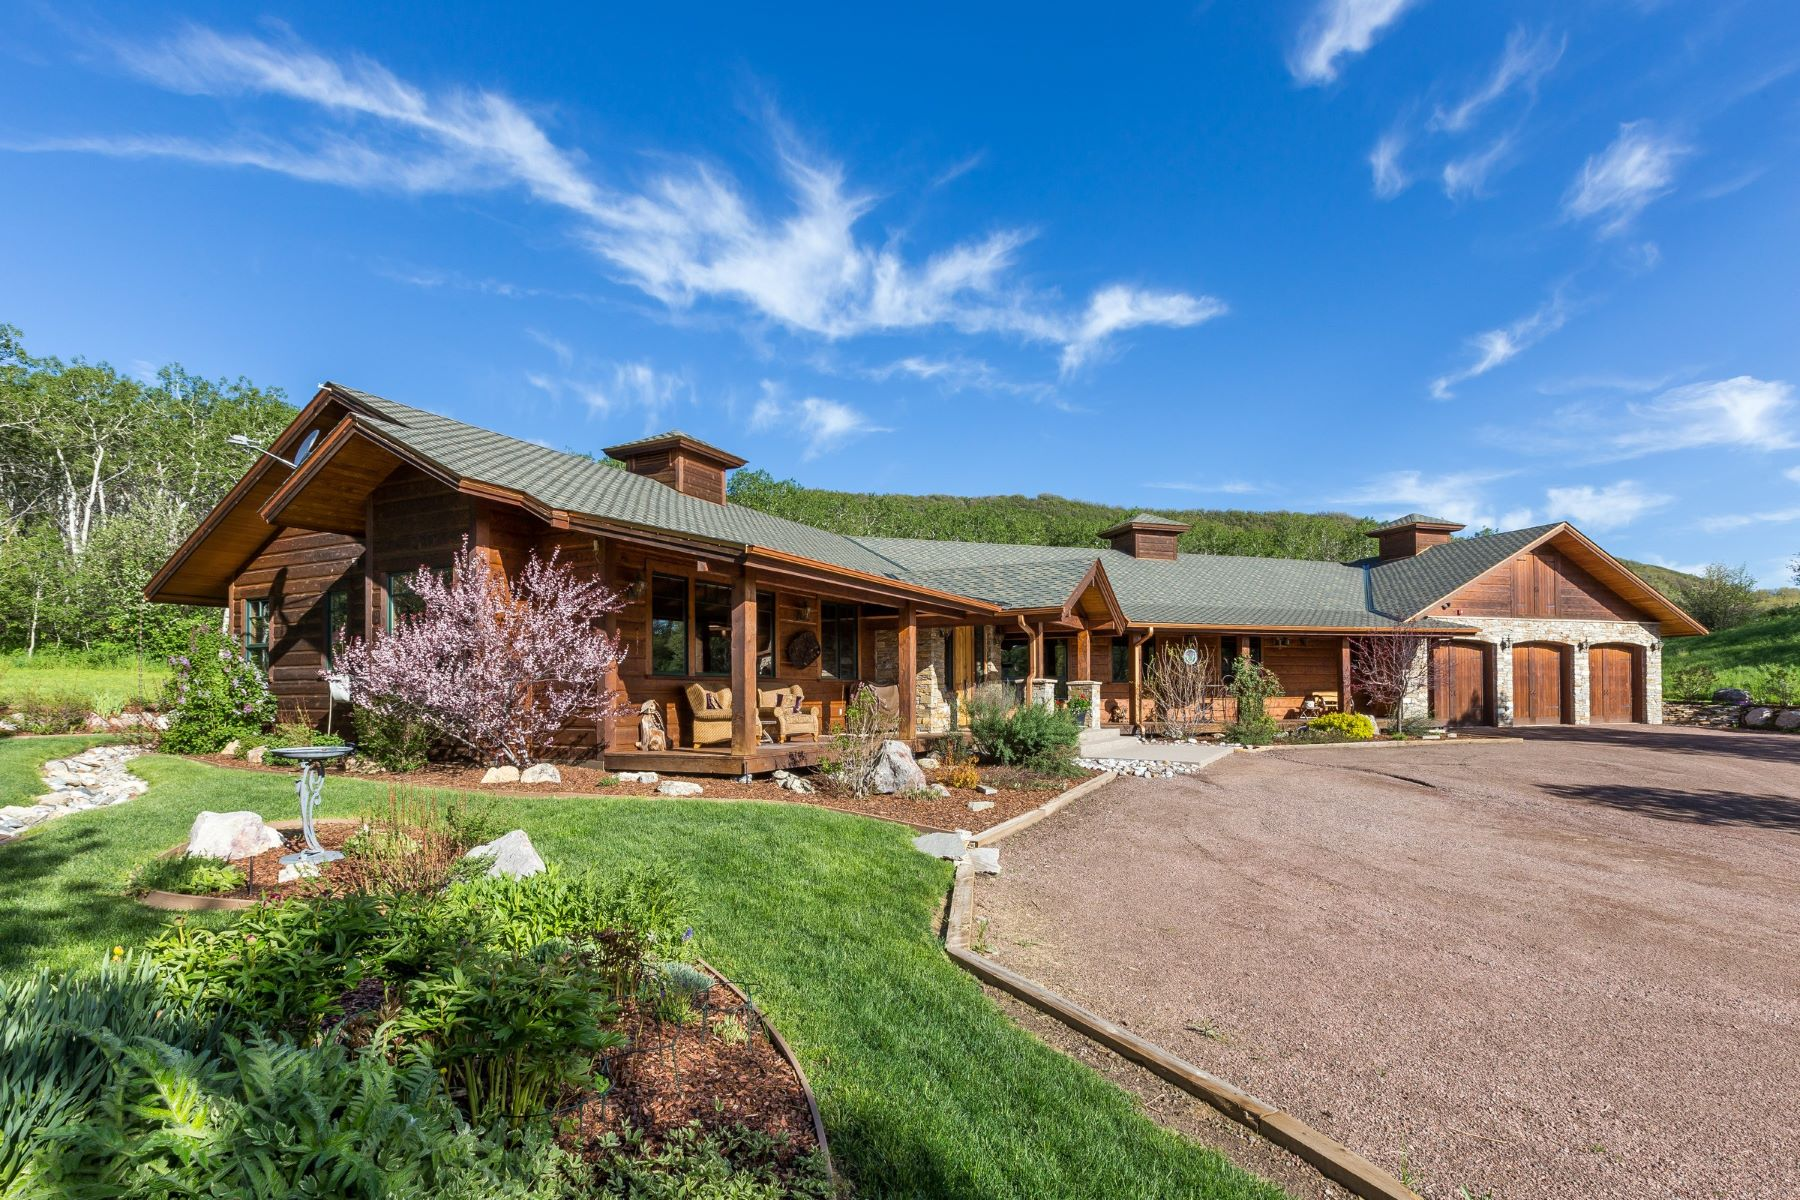 Additional photo for property listing at Impeccable Gentleman's Ranch 26000 Deerwood Lane 斯廷博特斯普林斯, 科罗拉多州 80487 美国